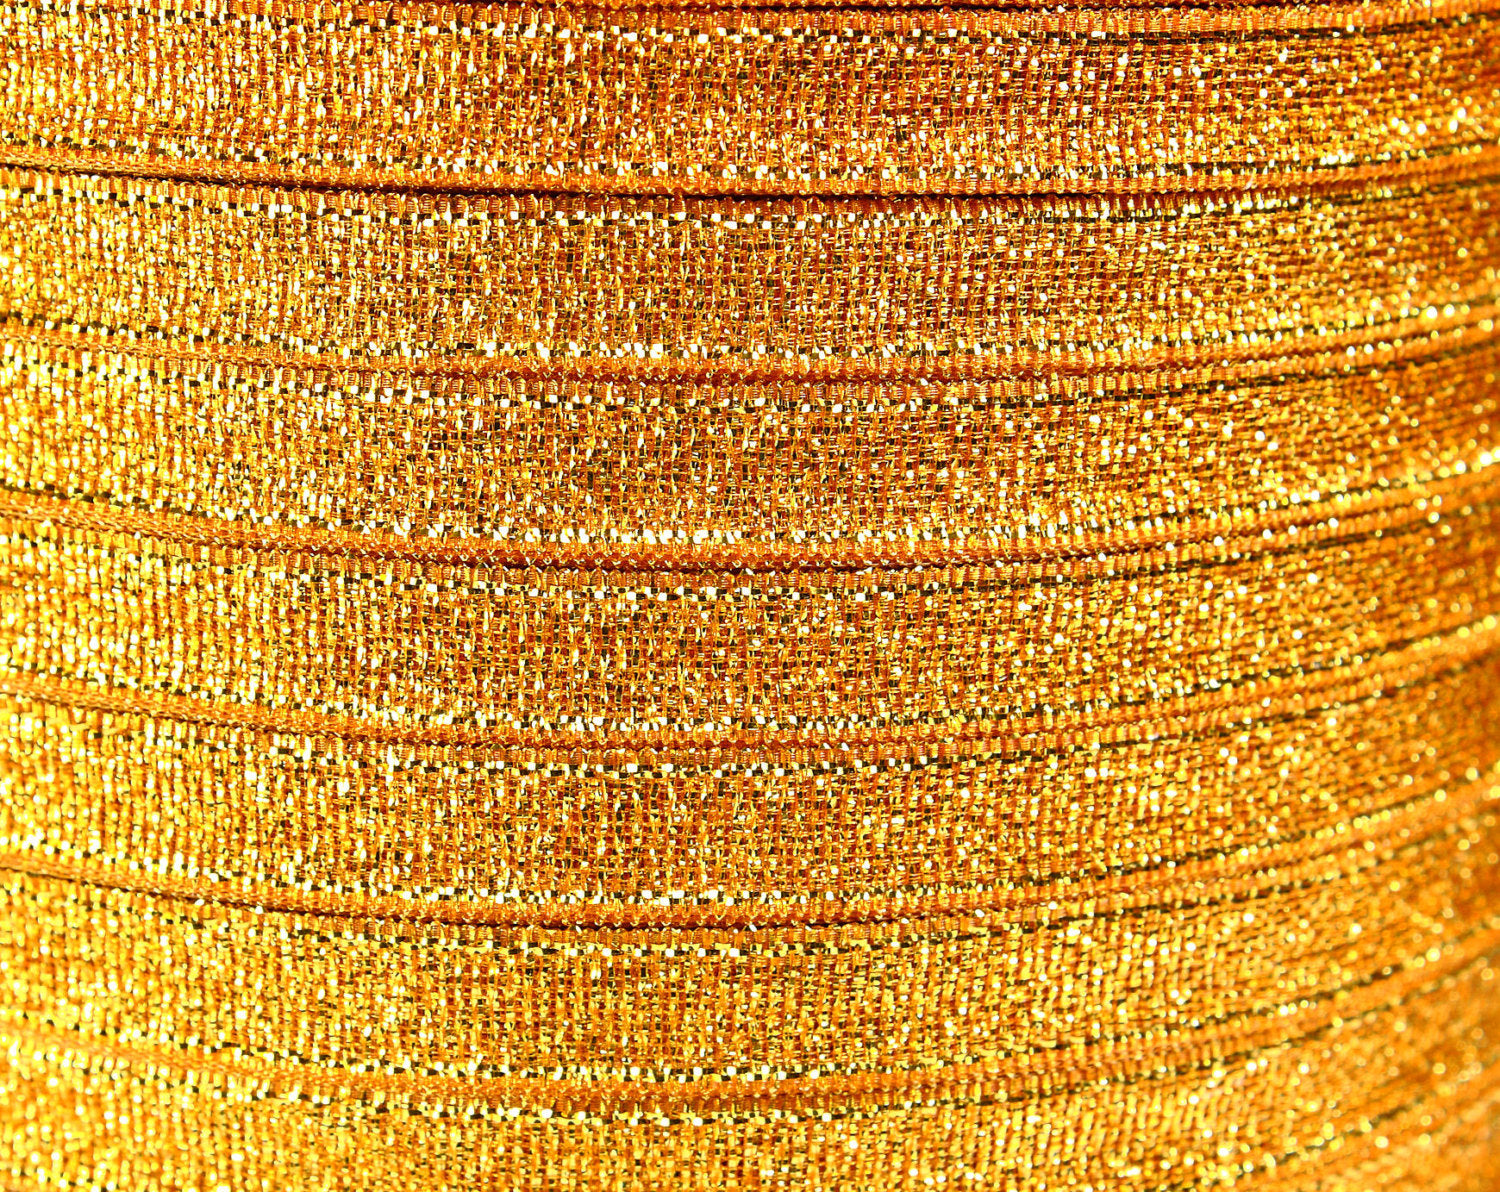 6mm gold Sparkle ribbon - Satin ribbon - Metallic Sparkle satin ribbon - Spool ribbon - 25 yards - 75 feet (R061)